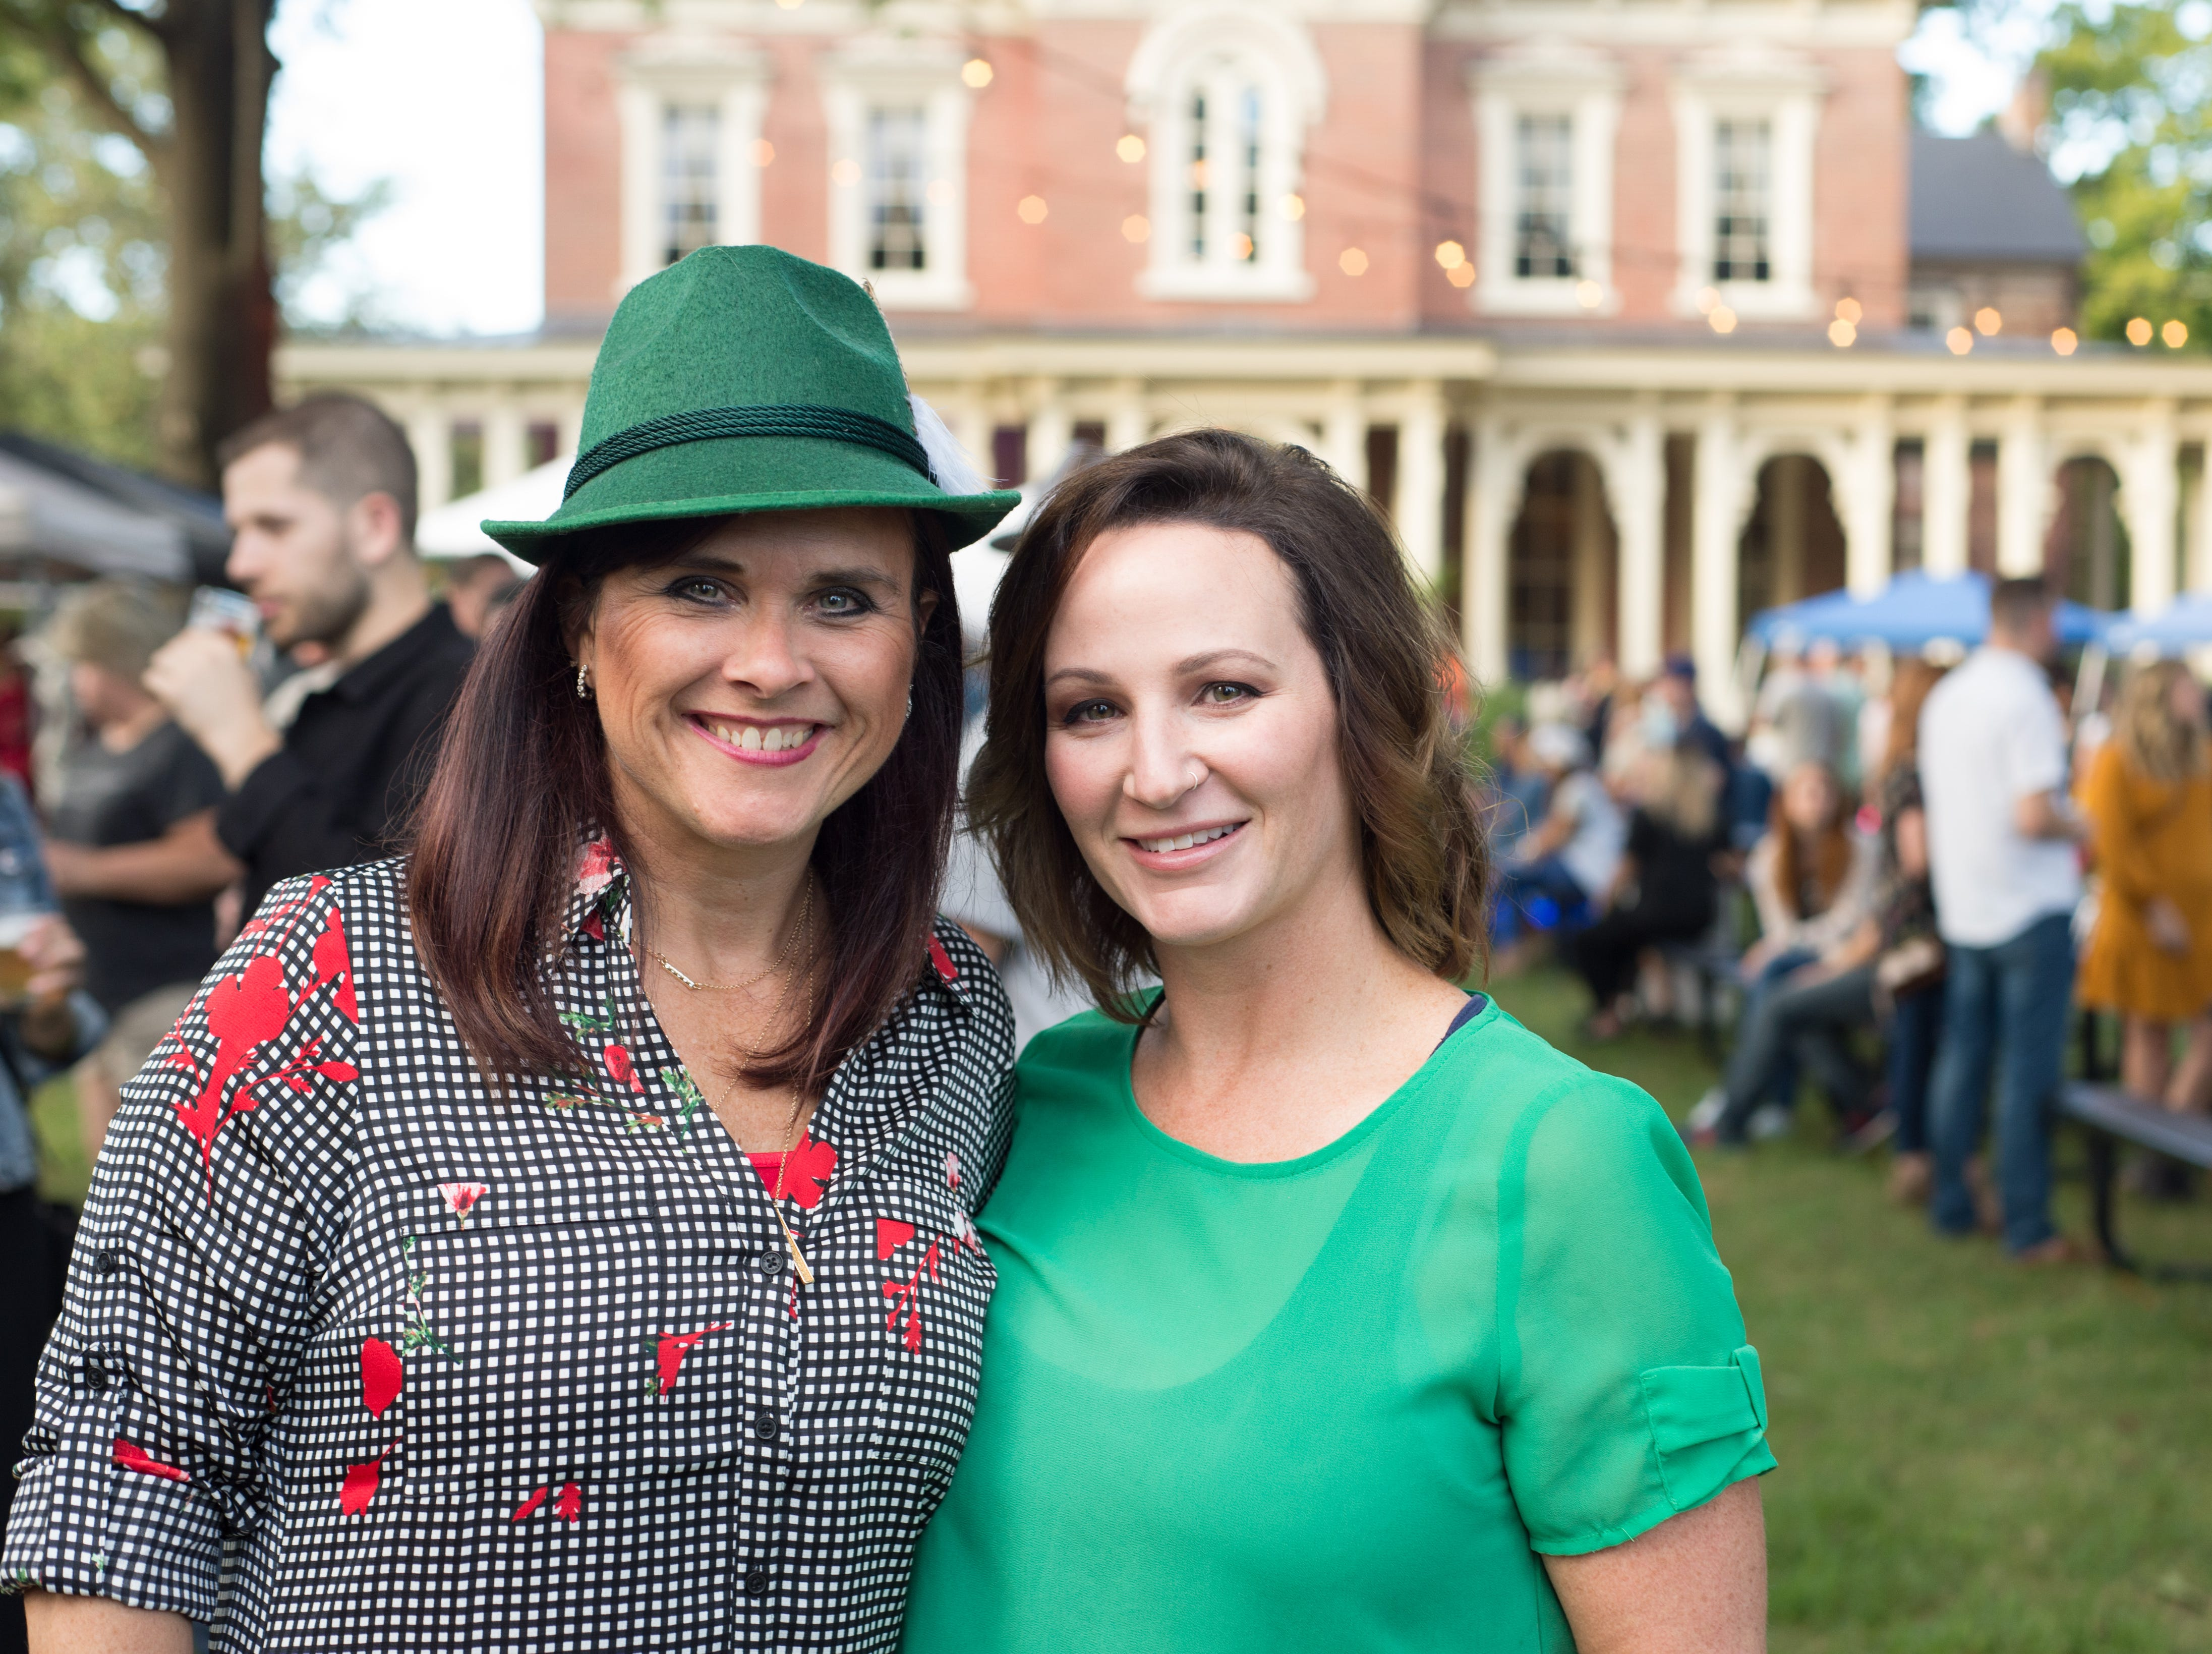 It was a beautiful night for Oktoberfest at Oaklands Mansion in Murfreesboro on Saturday, Sept. 29.